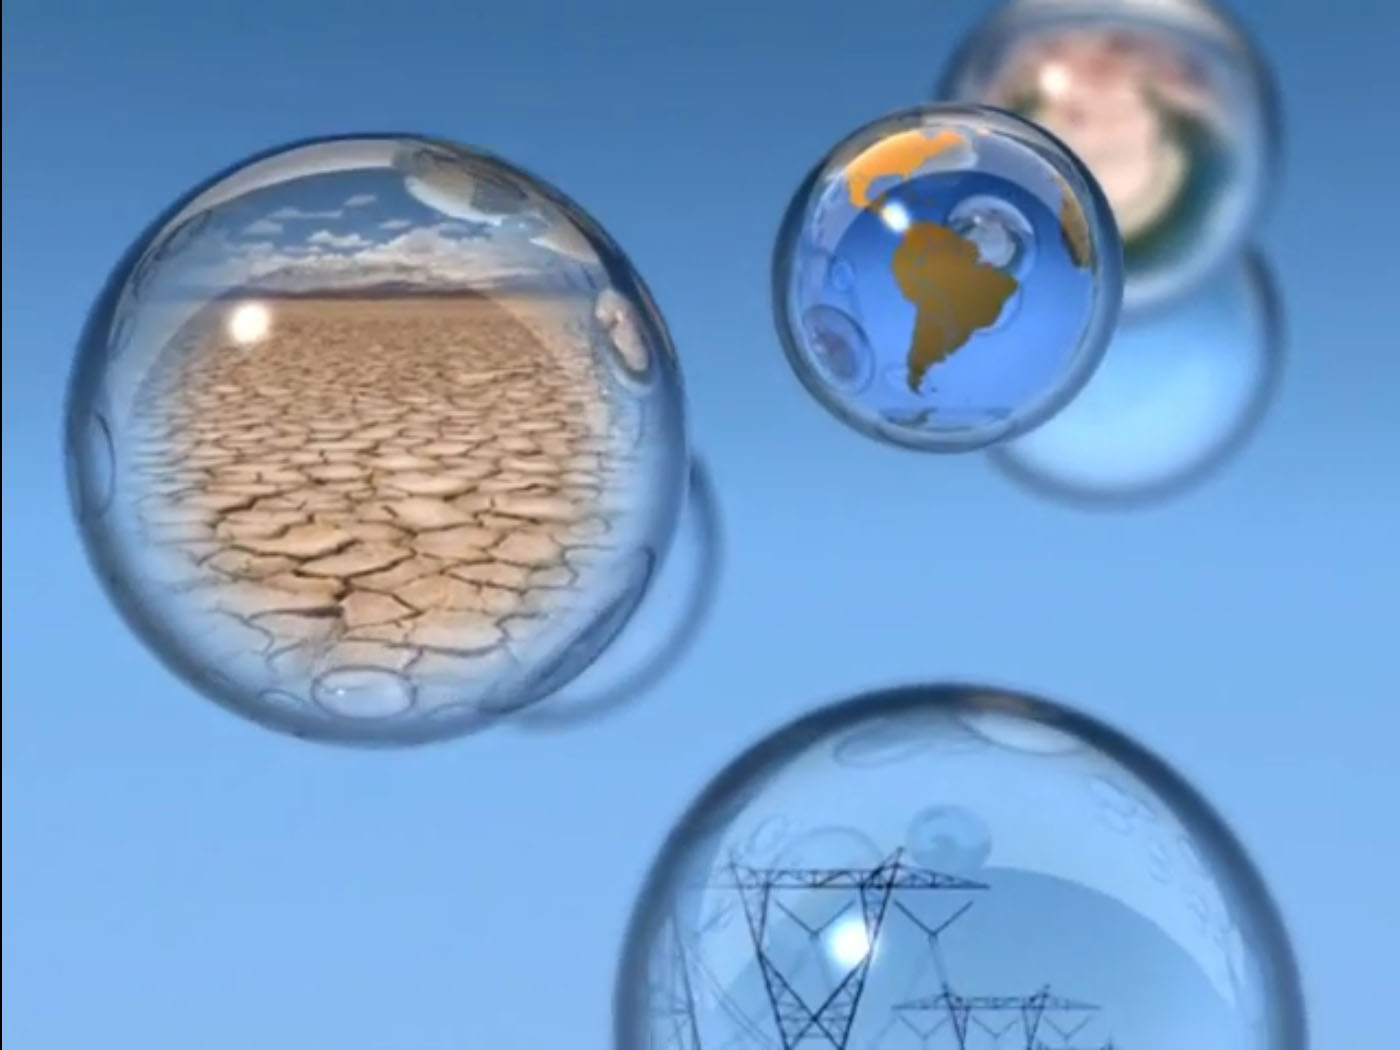 Bubbles from television commercial produced for Central Arizona Project.